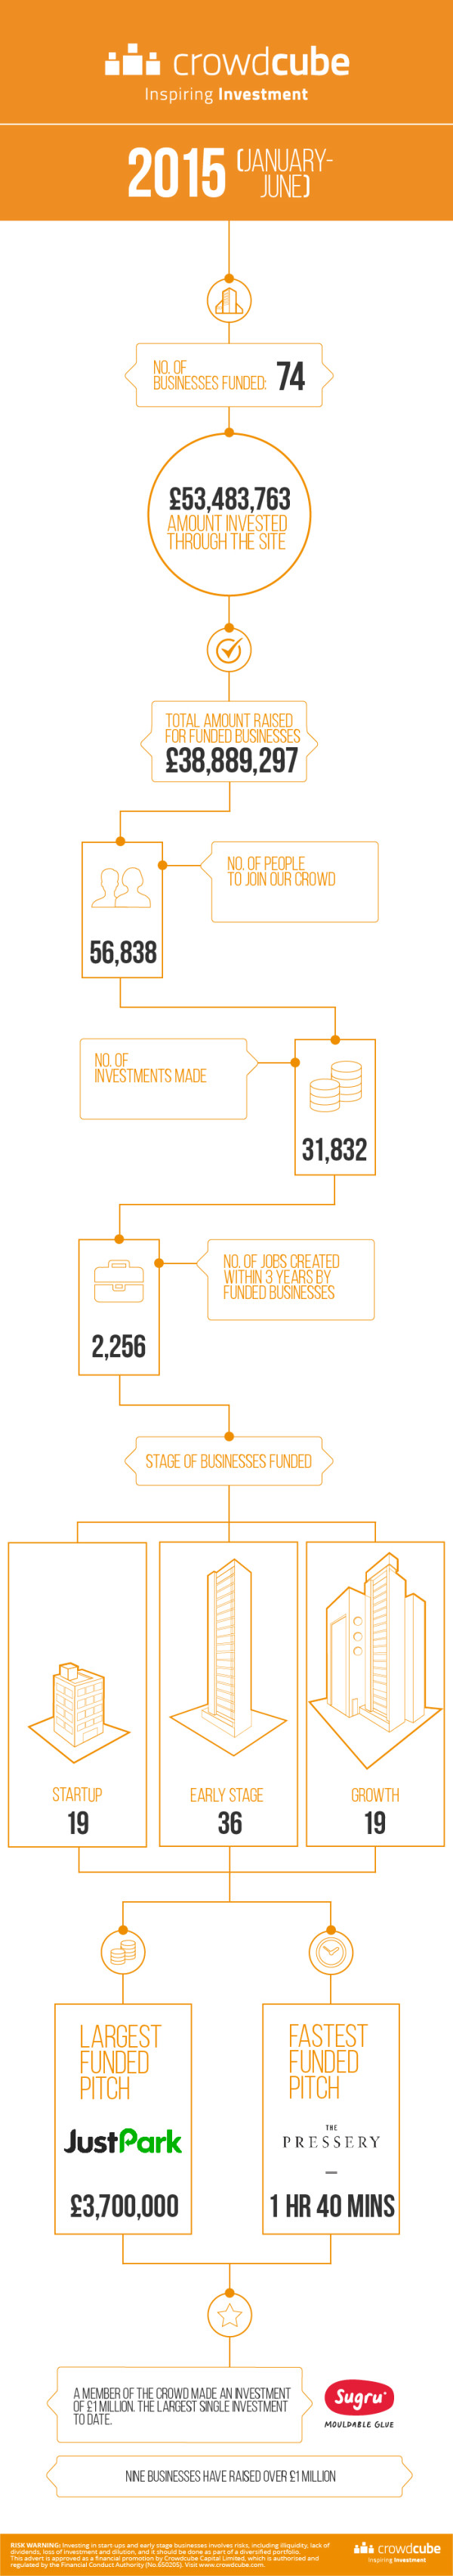 crowdcube, infographie crowdfunding